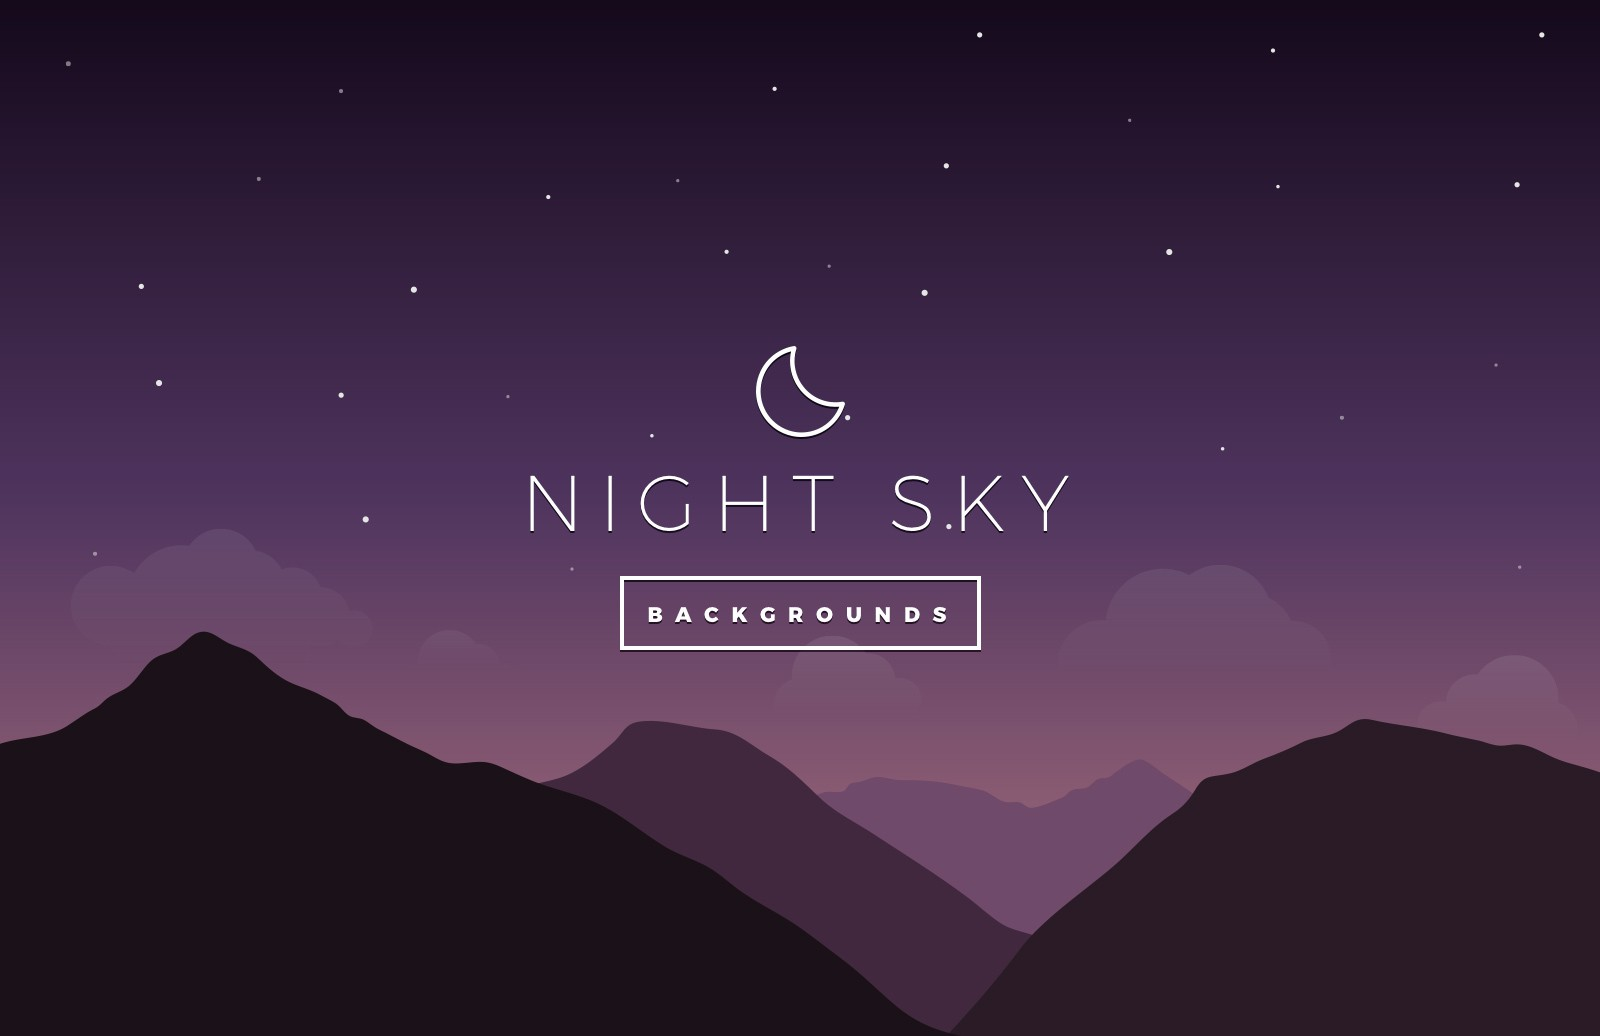 Night sky vector backgrounds medialoot night sky vector backgrounds preview 1 thecheapjerseys Image collections